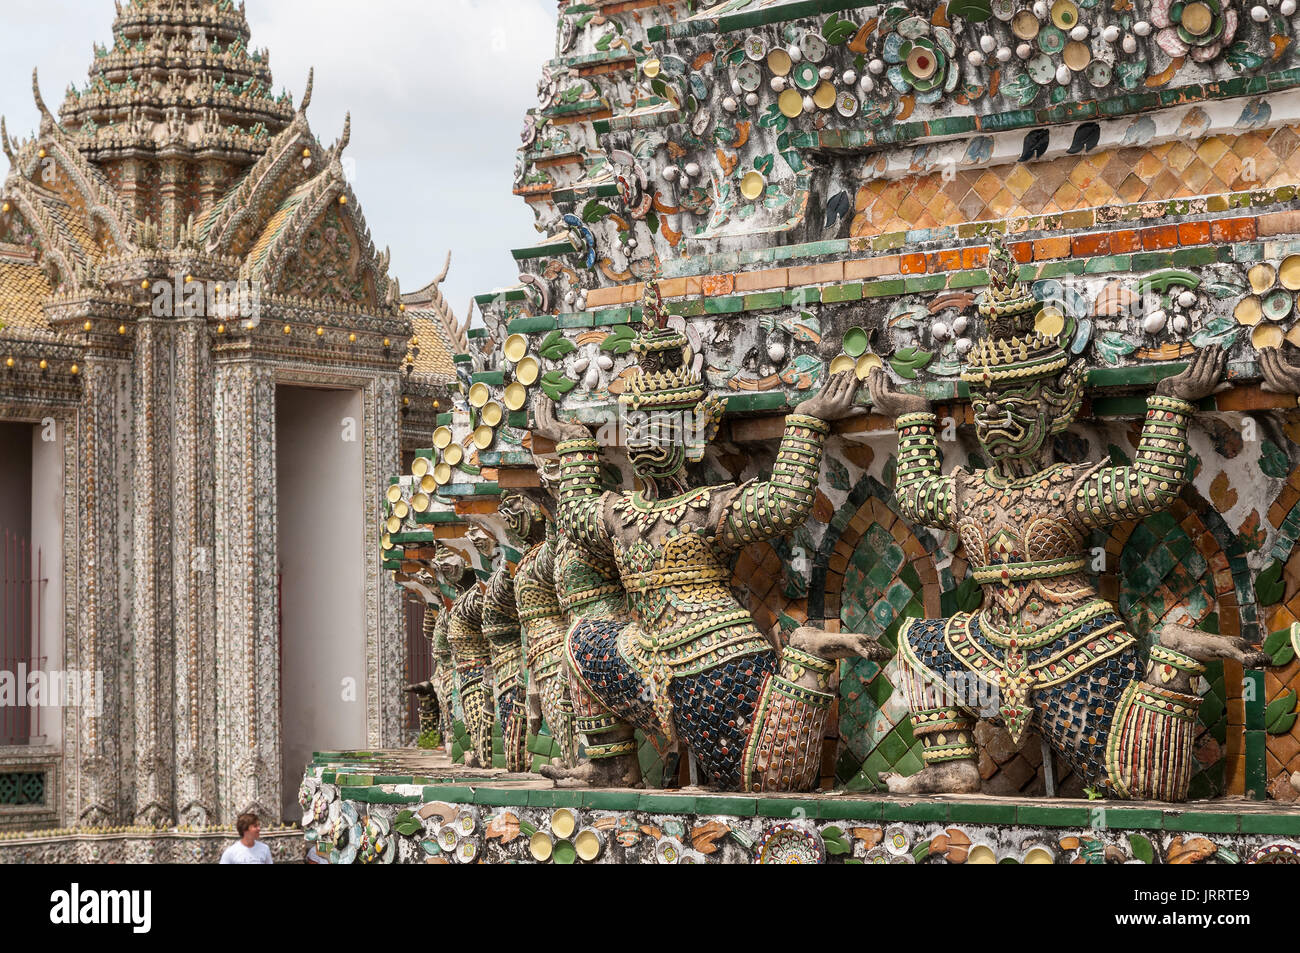 Ancient Chinese figures decorated with ceramic tiles,  at the Wat Arun temple, on the Chao Phraya River. Yai district, Bangkok, Thailand - Stock Image